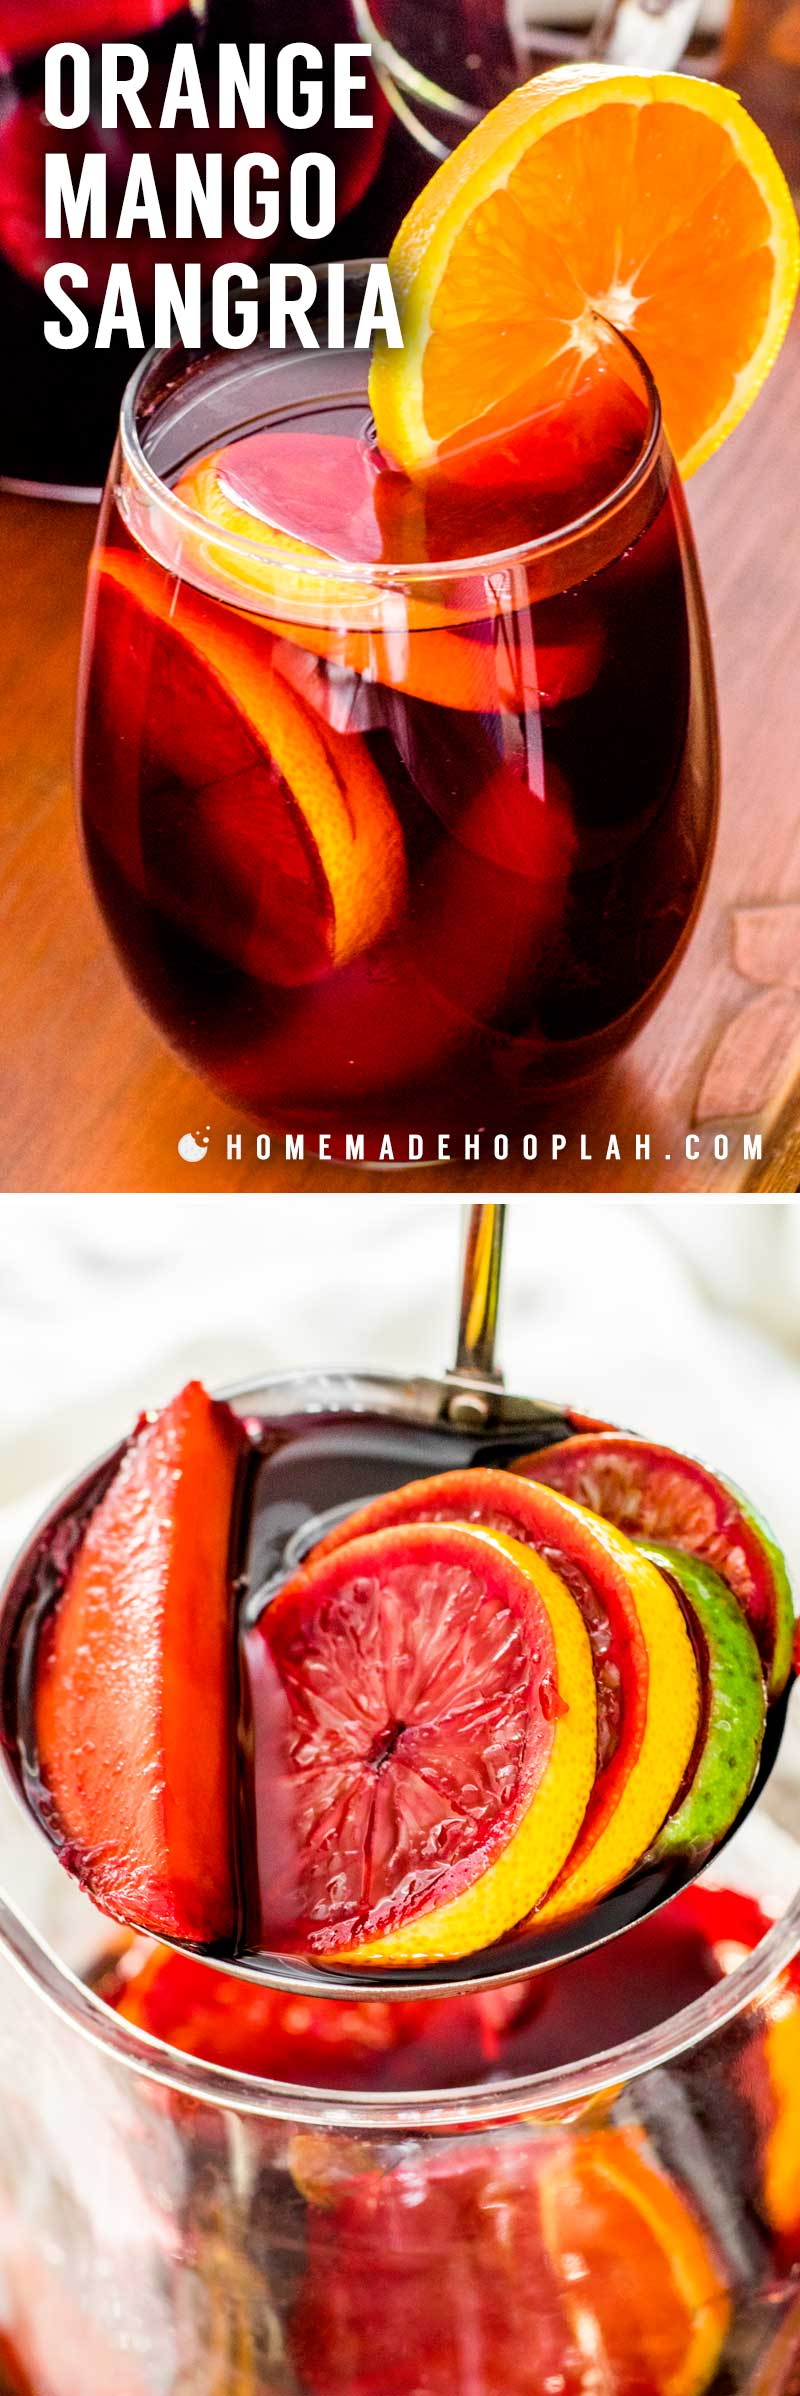 Orange Mango Sangria! Delicious orange mango sangria with sweet red wine infused with mango, orange, lemon, and lime, then spiked with a surprise shot of orange cointreau. | HomemadeHooplah.com